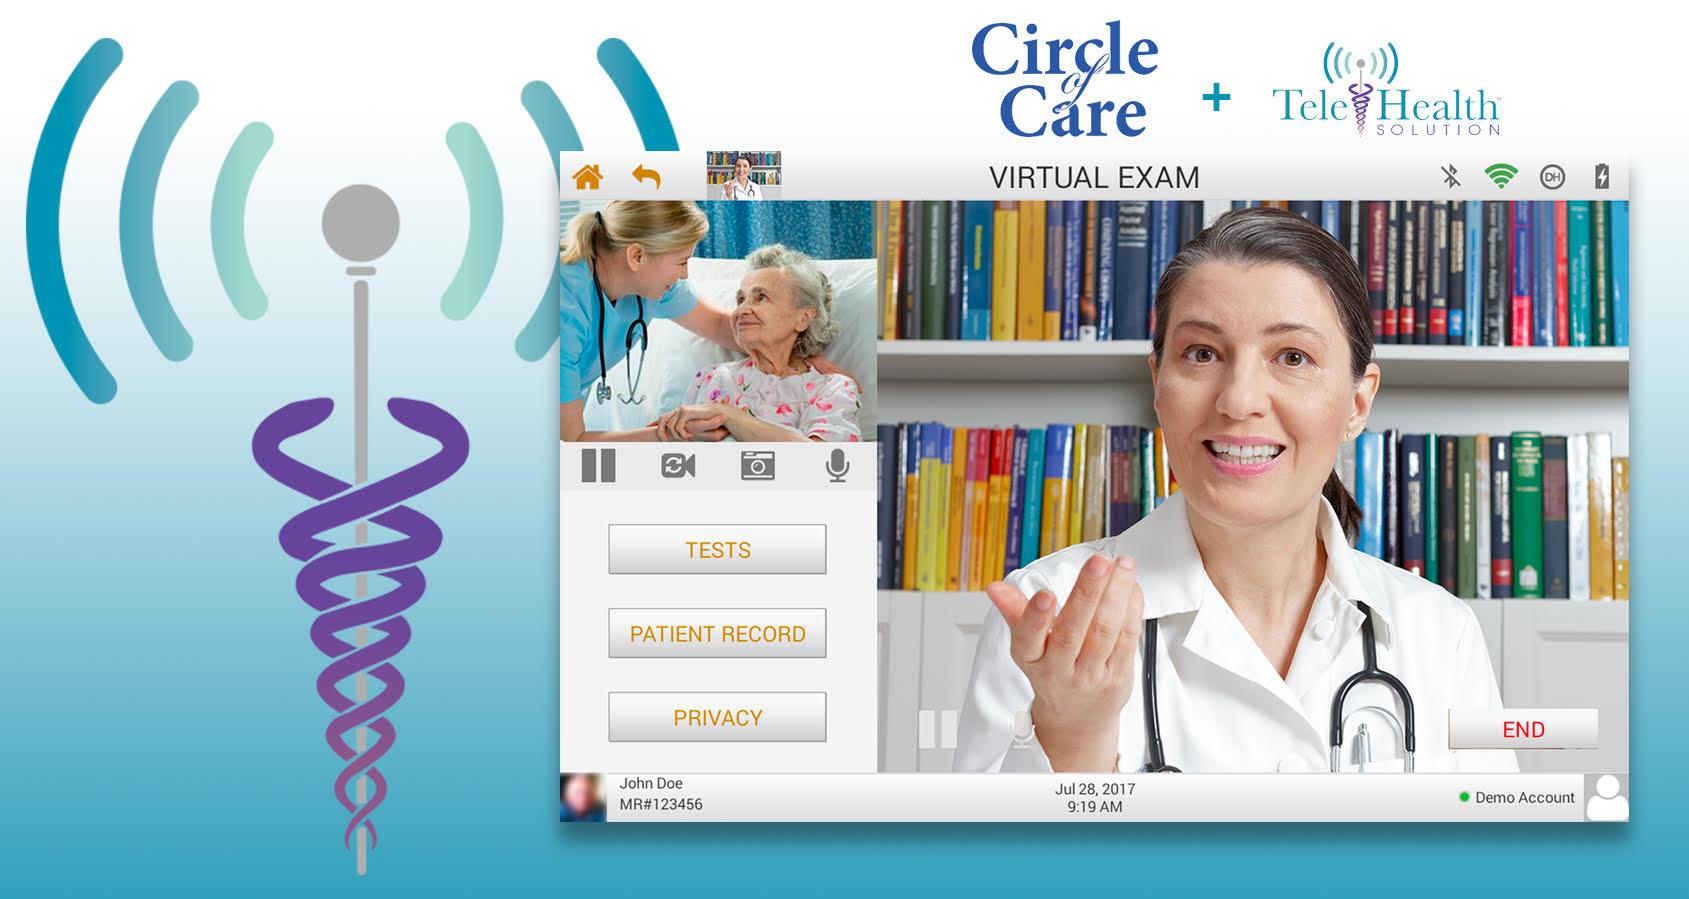 Circle of Care partnered with TeleHealth Solution Technology